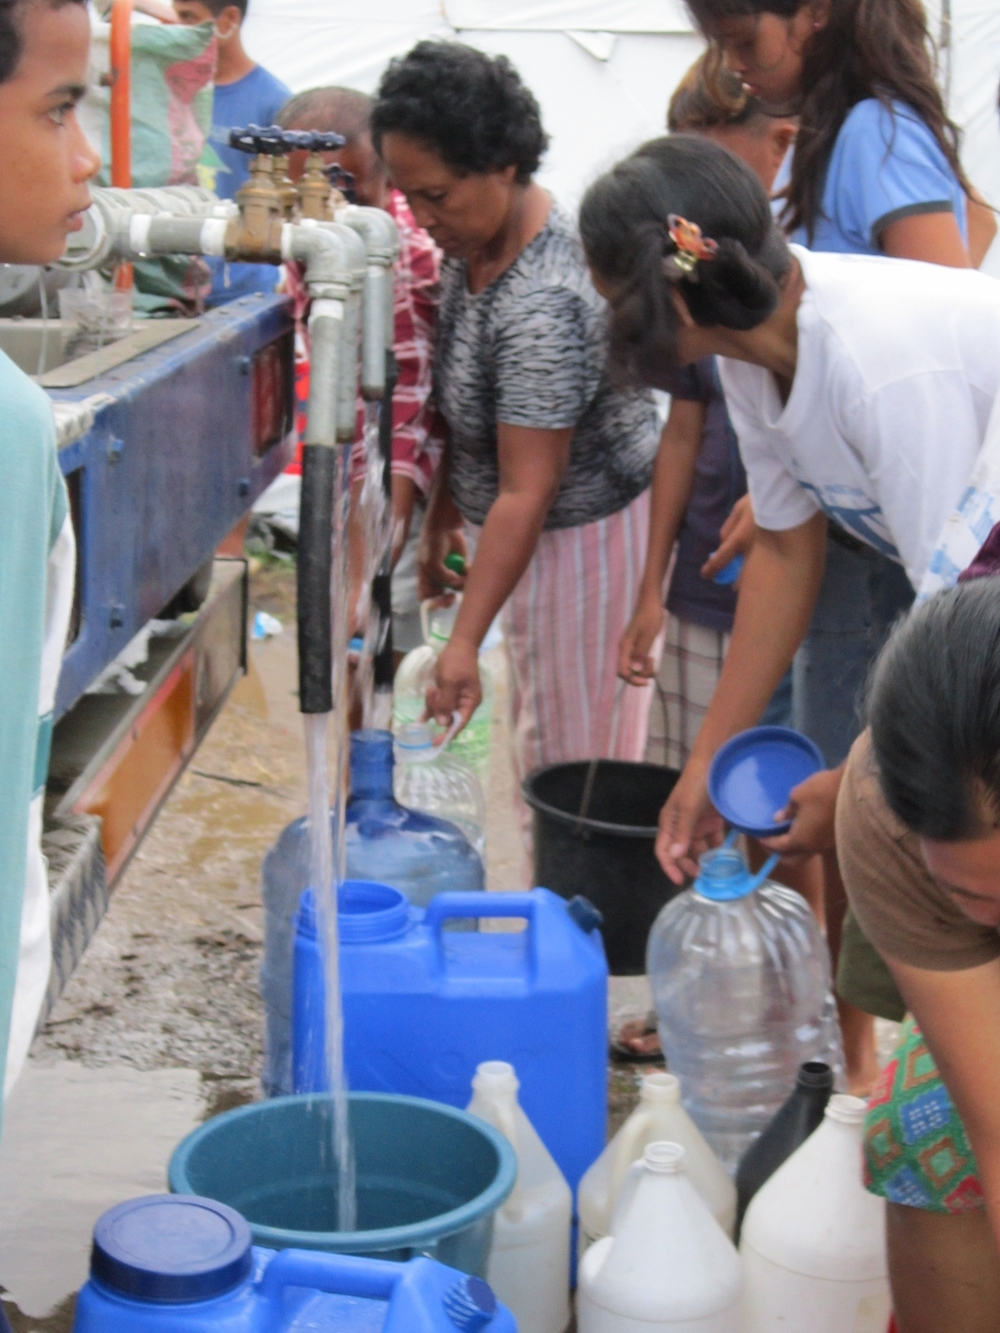 Water distribution at the Calaanan temporary relocation site in Northern Mindanao. Food, water, and shelter remain urgent needs one month after typhoon Washi struck